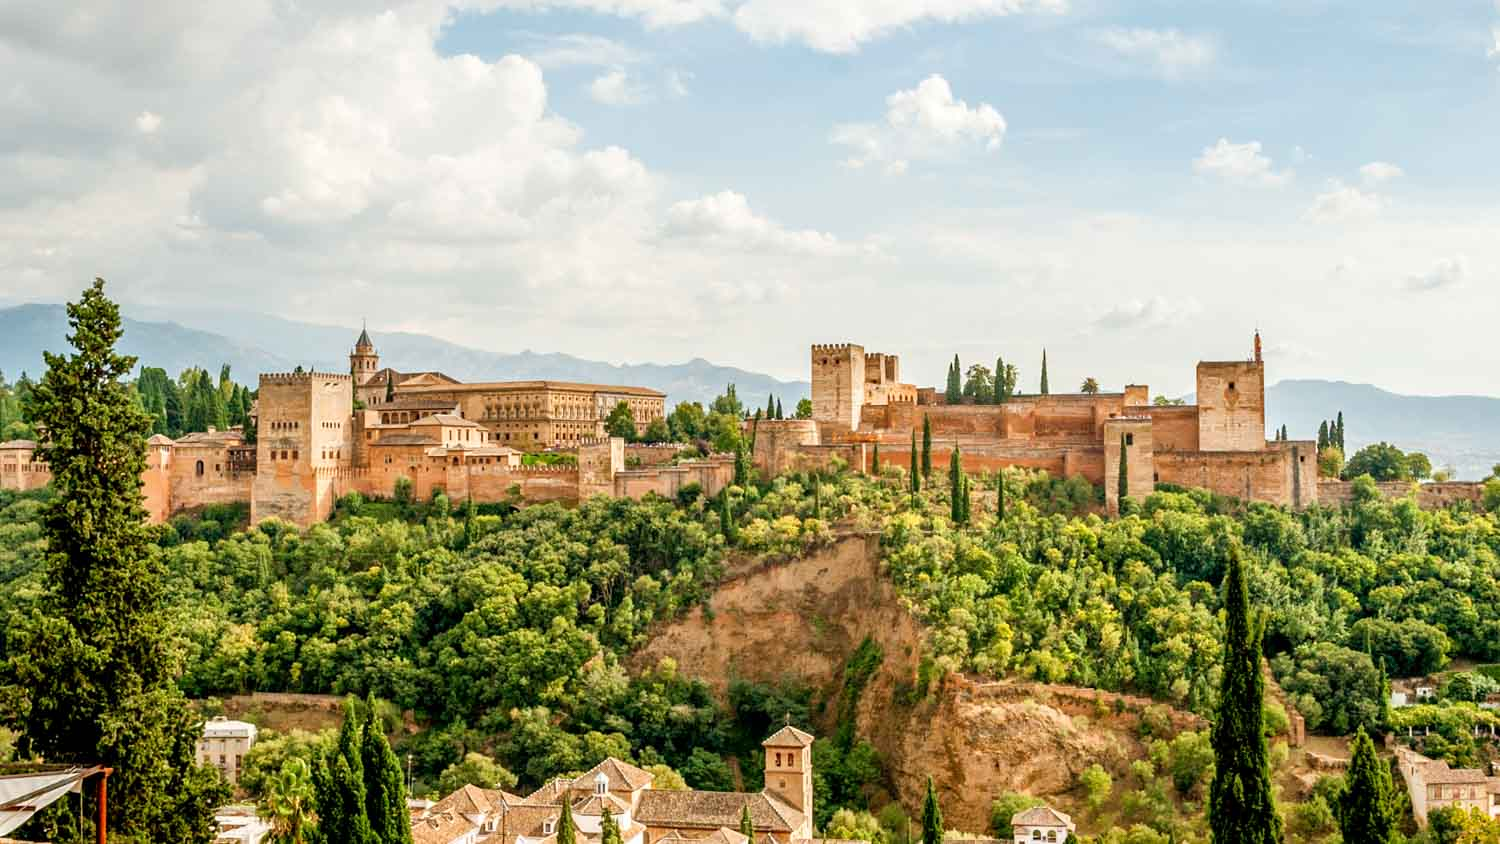 Visit one of Spain's most significant historical sites